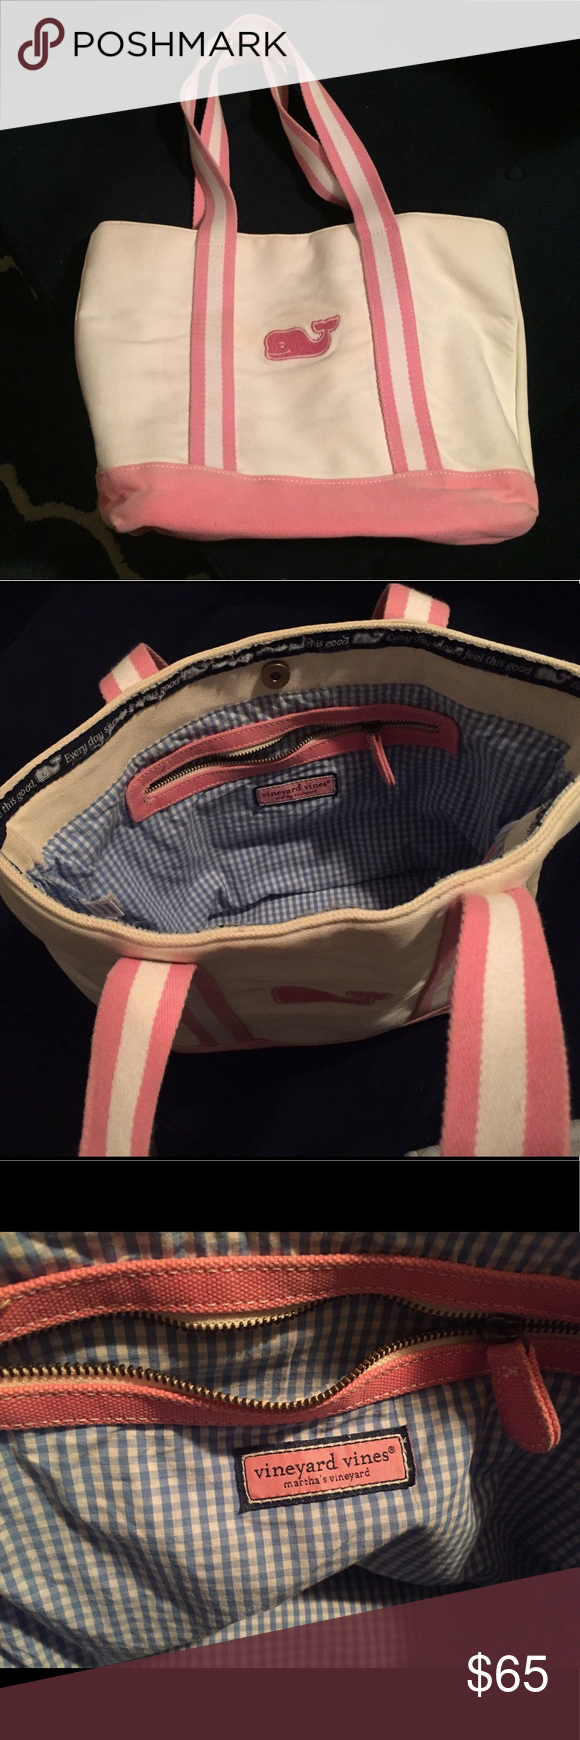 Pink Vineyard Vines Bag Cute pink Vineyard Vines Bag! A little minor discoloration on the front near the whale. Great bag for summer. Grab it when heading to the beach 😎 Vineyard Vines Bags Totes